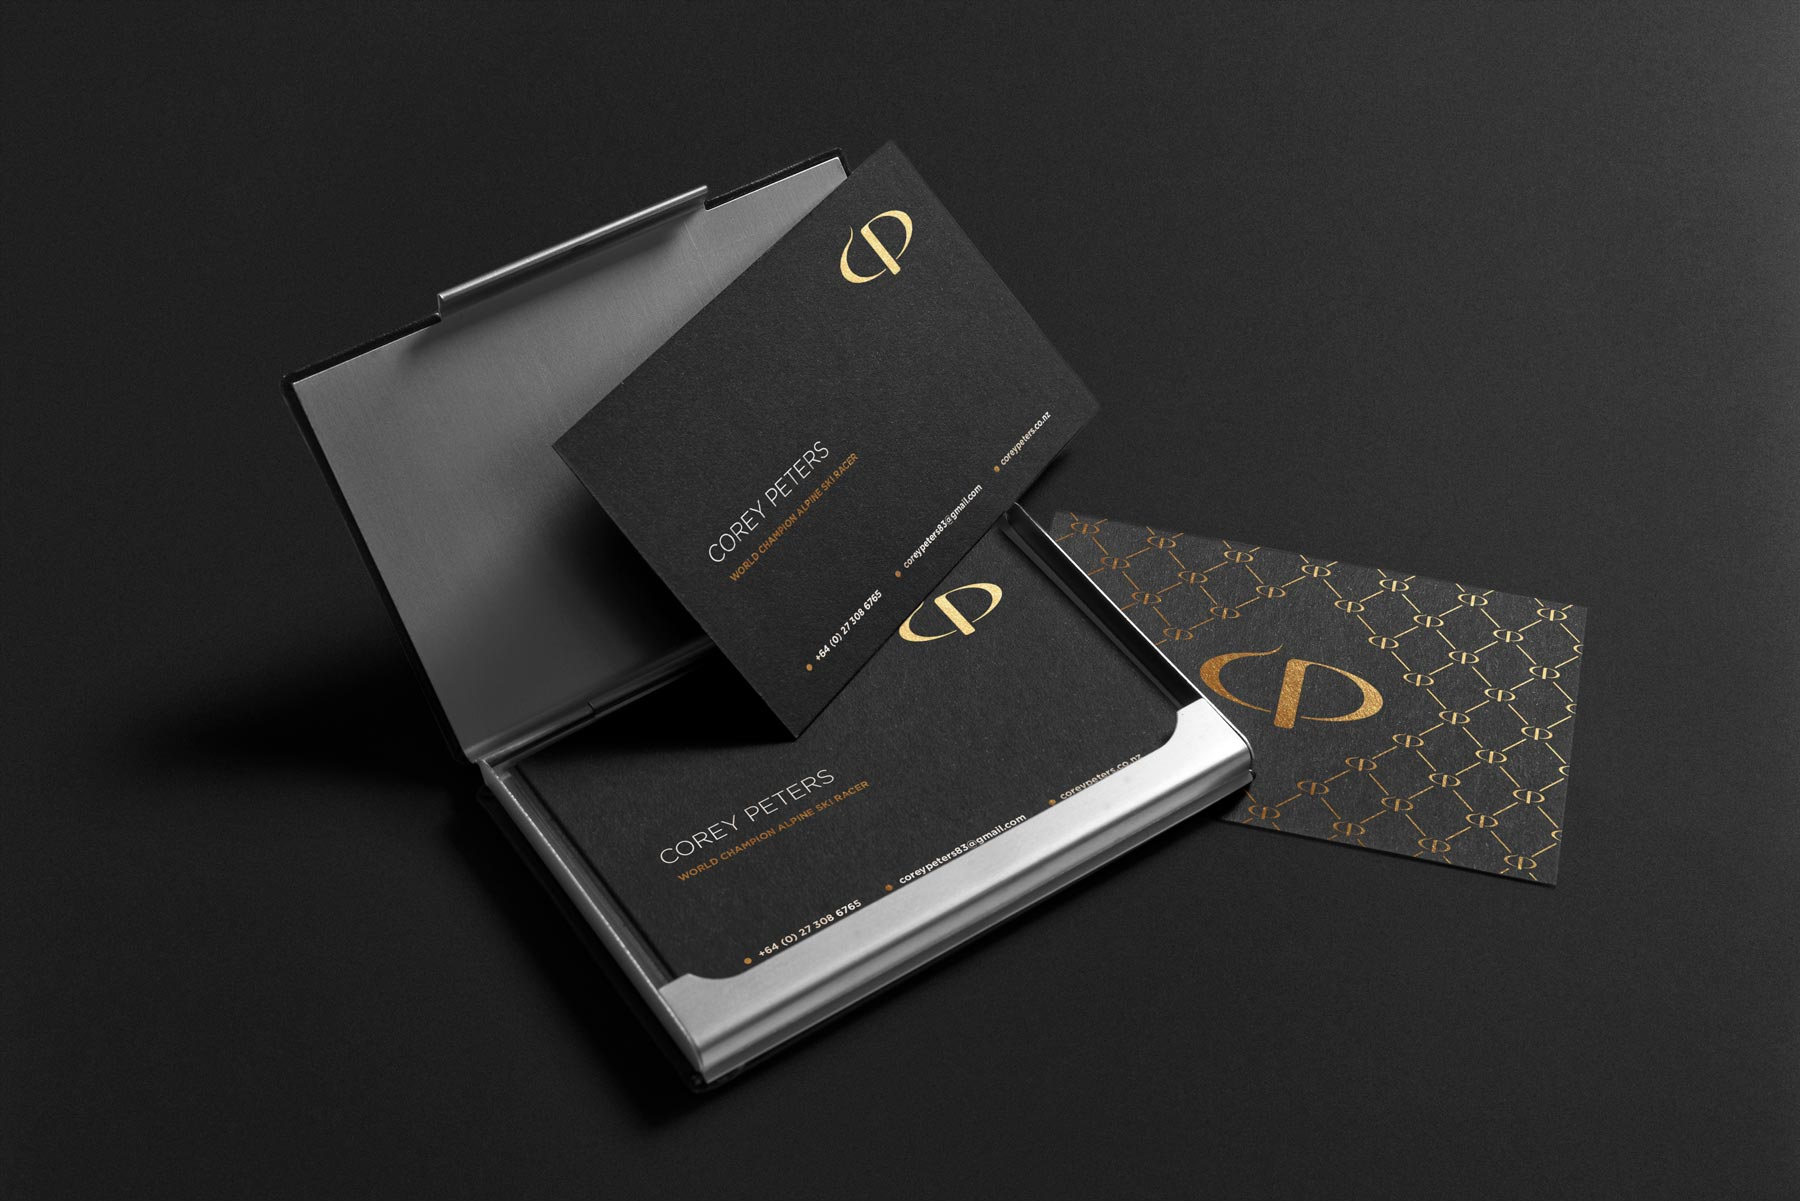 Corey Peters business cards black with gold logo and brand identity displaying front and back examples